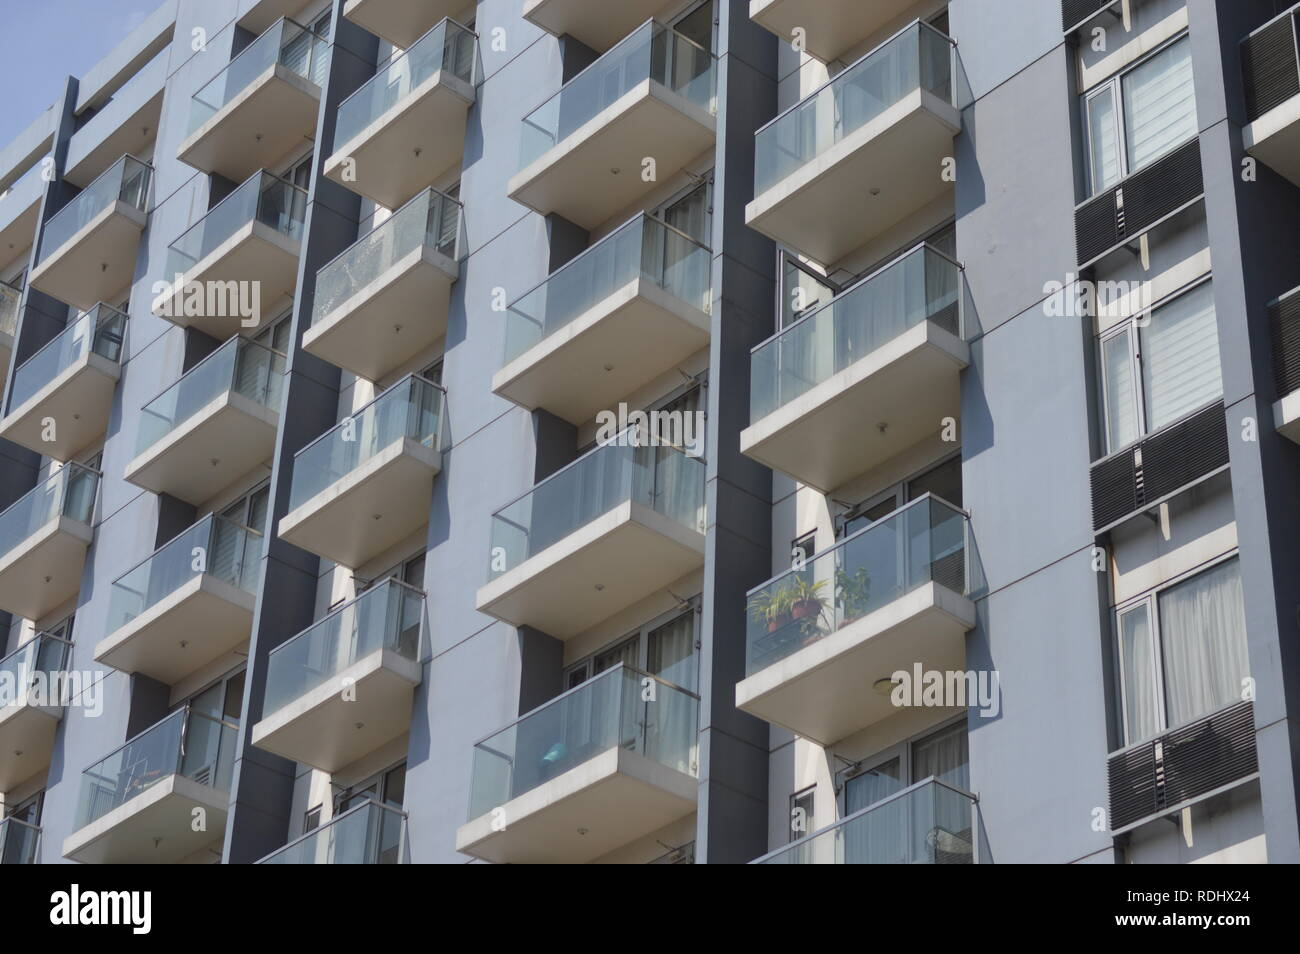 Balconies of a white apartment building during a sunny after noon in Pasay city, Philippines. - Stock Image